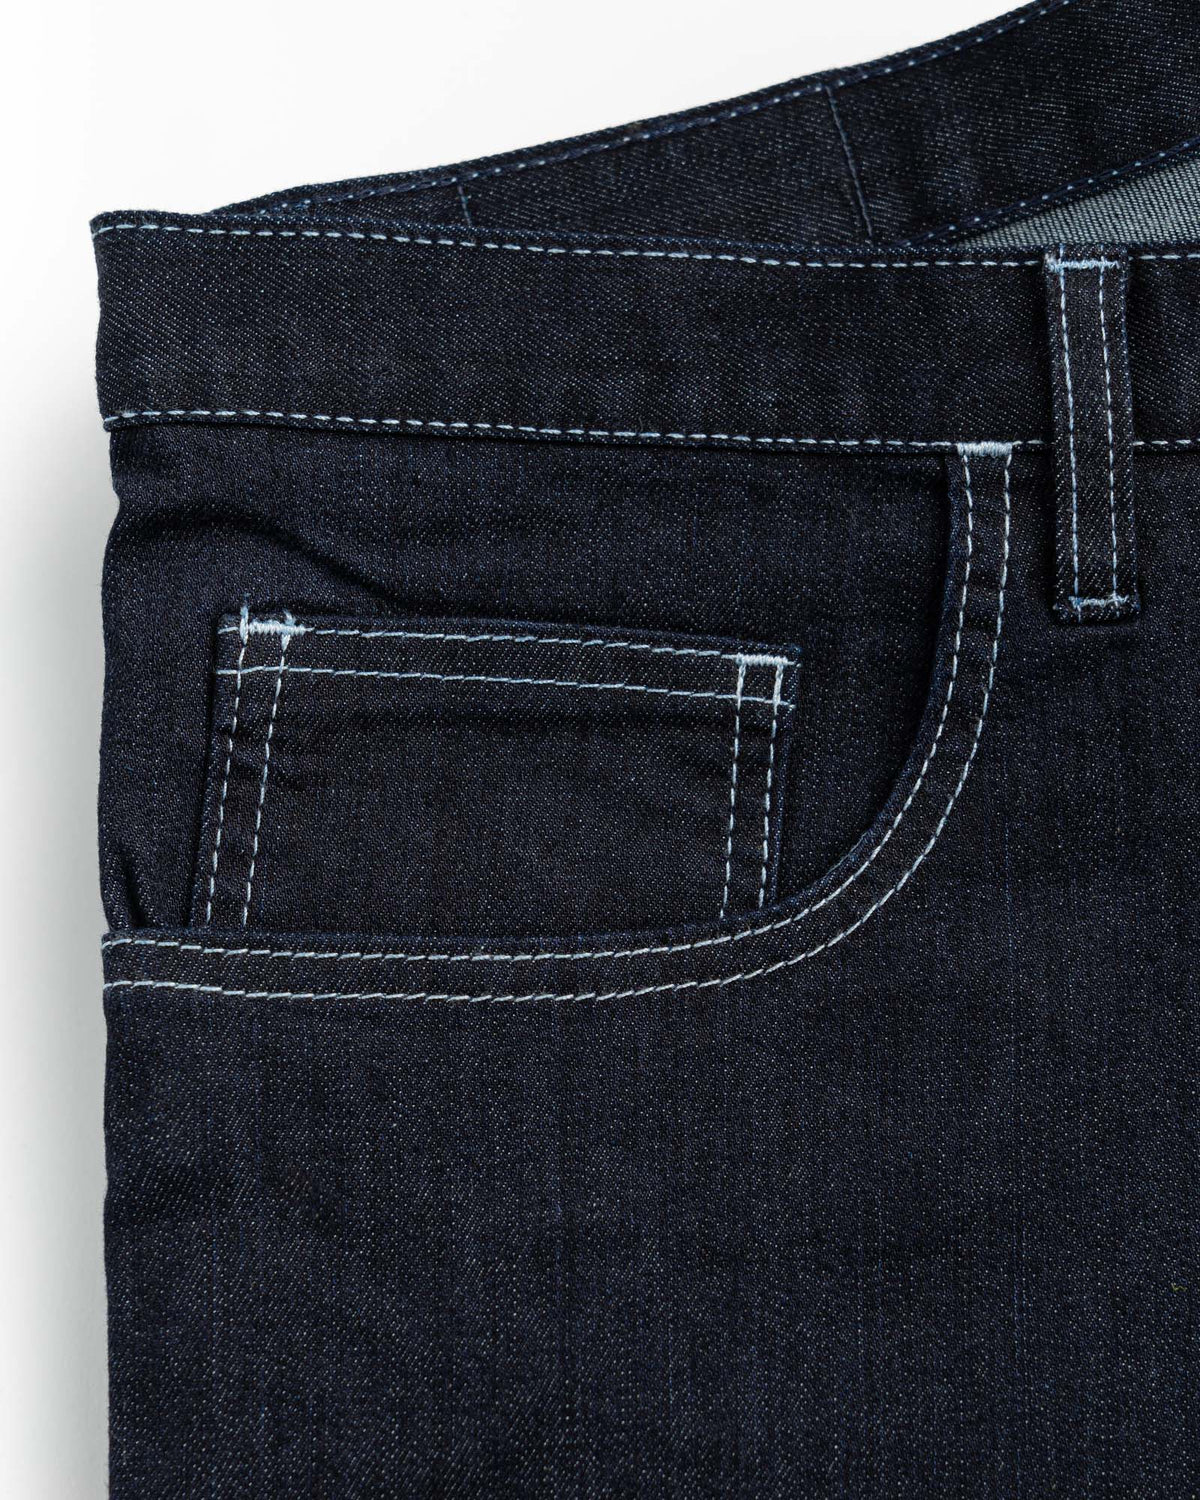 Relaxed Fit Dark Dark 10oz Stretch Denim Jeans Men's Jeans